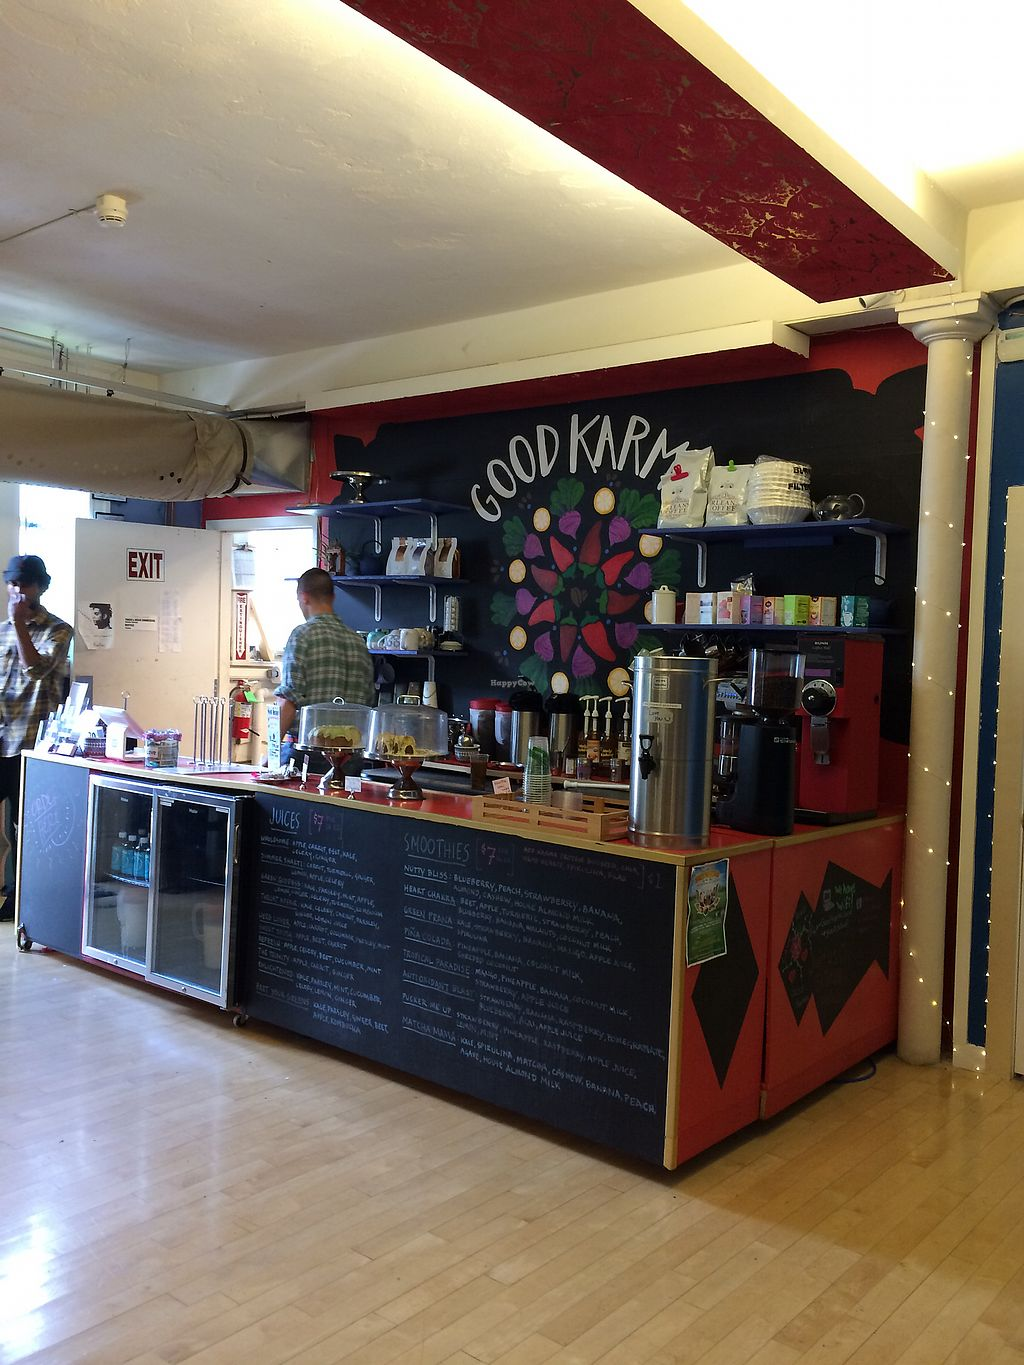 """Photo of Good Karma Cafe  by <a href=""""/members/profile/KatieBush"""">KatieBush</a> <br/>counter <br/> October 6, 2017  - <a href='/contact/abuse/image/53789/312465'>Report</a>"""